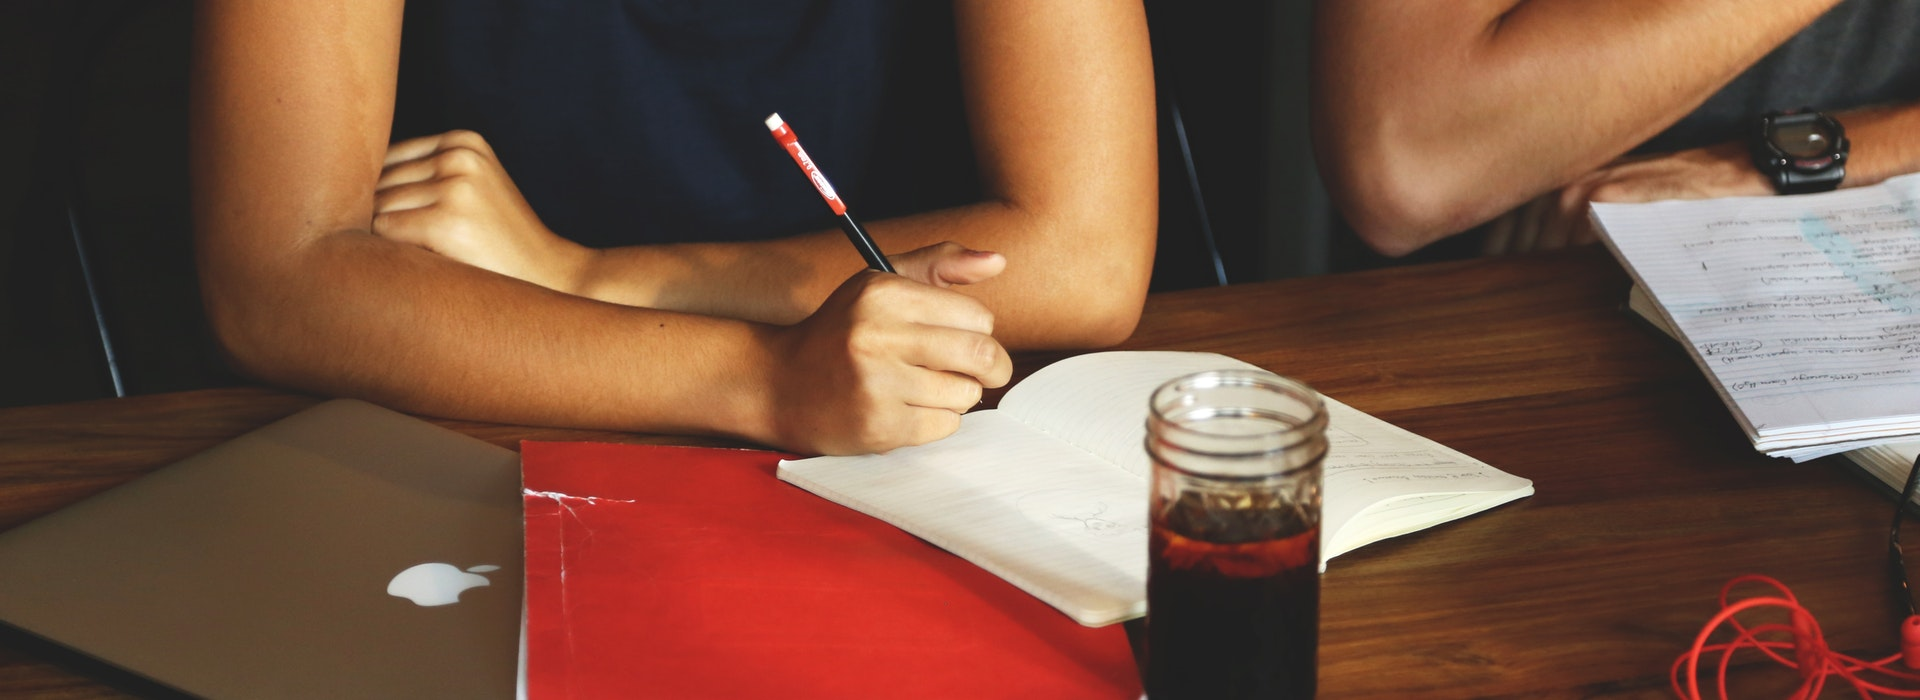 Closeup photo of a woman writing in a red notebook on a desk with a cup of coffee in front of her